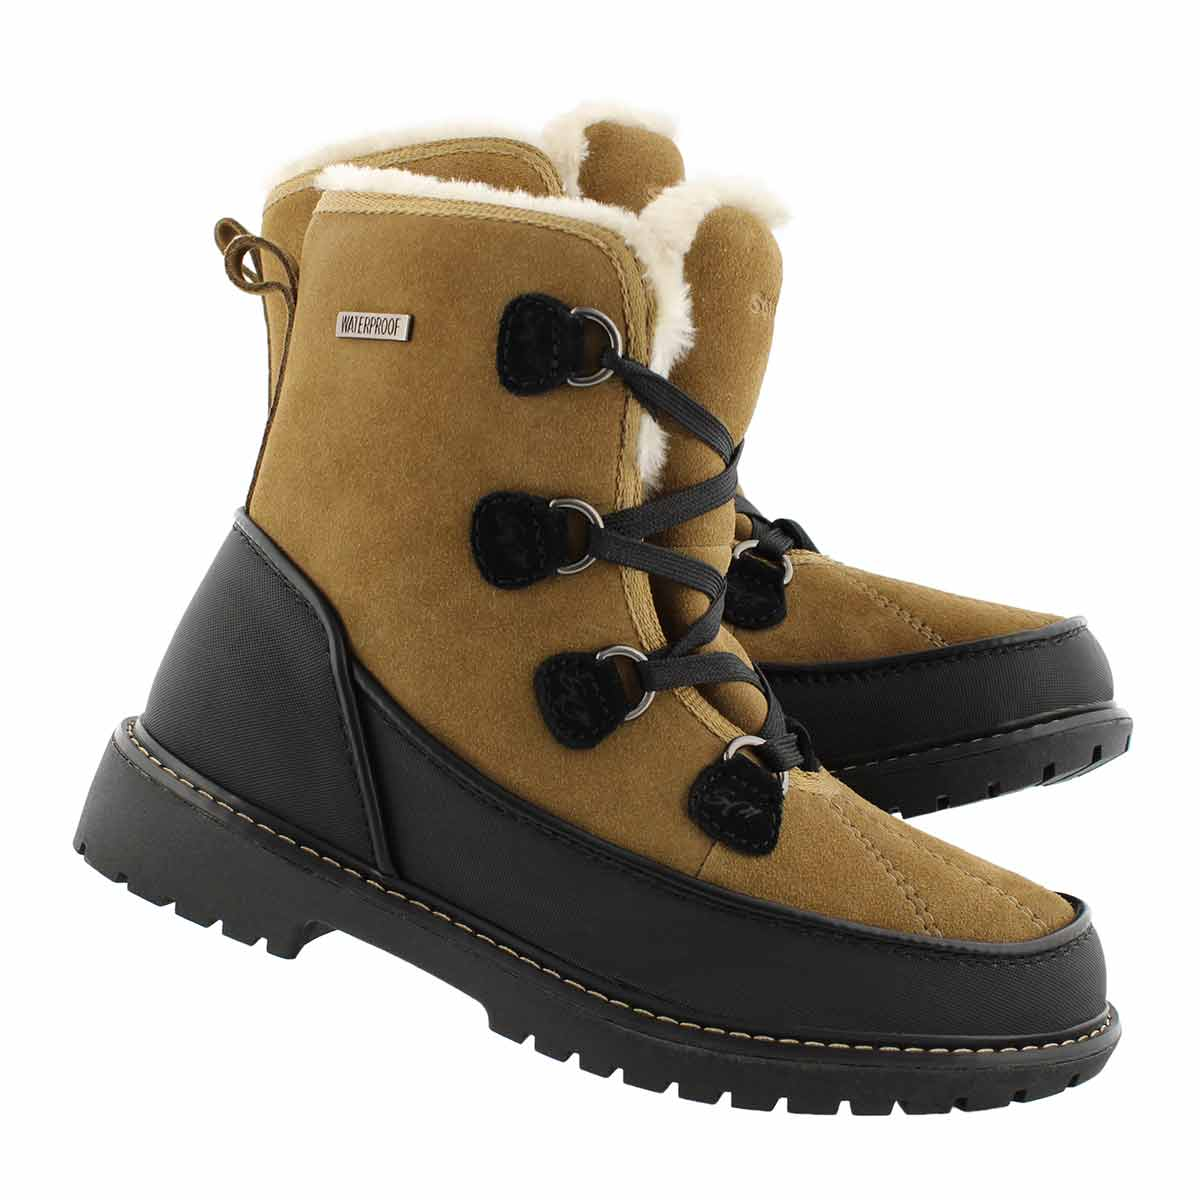 Lds Stephanie taupe suede WP winter boot